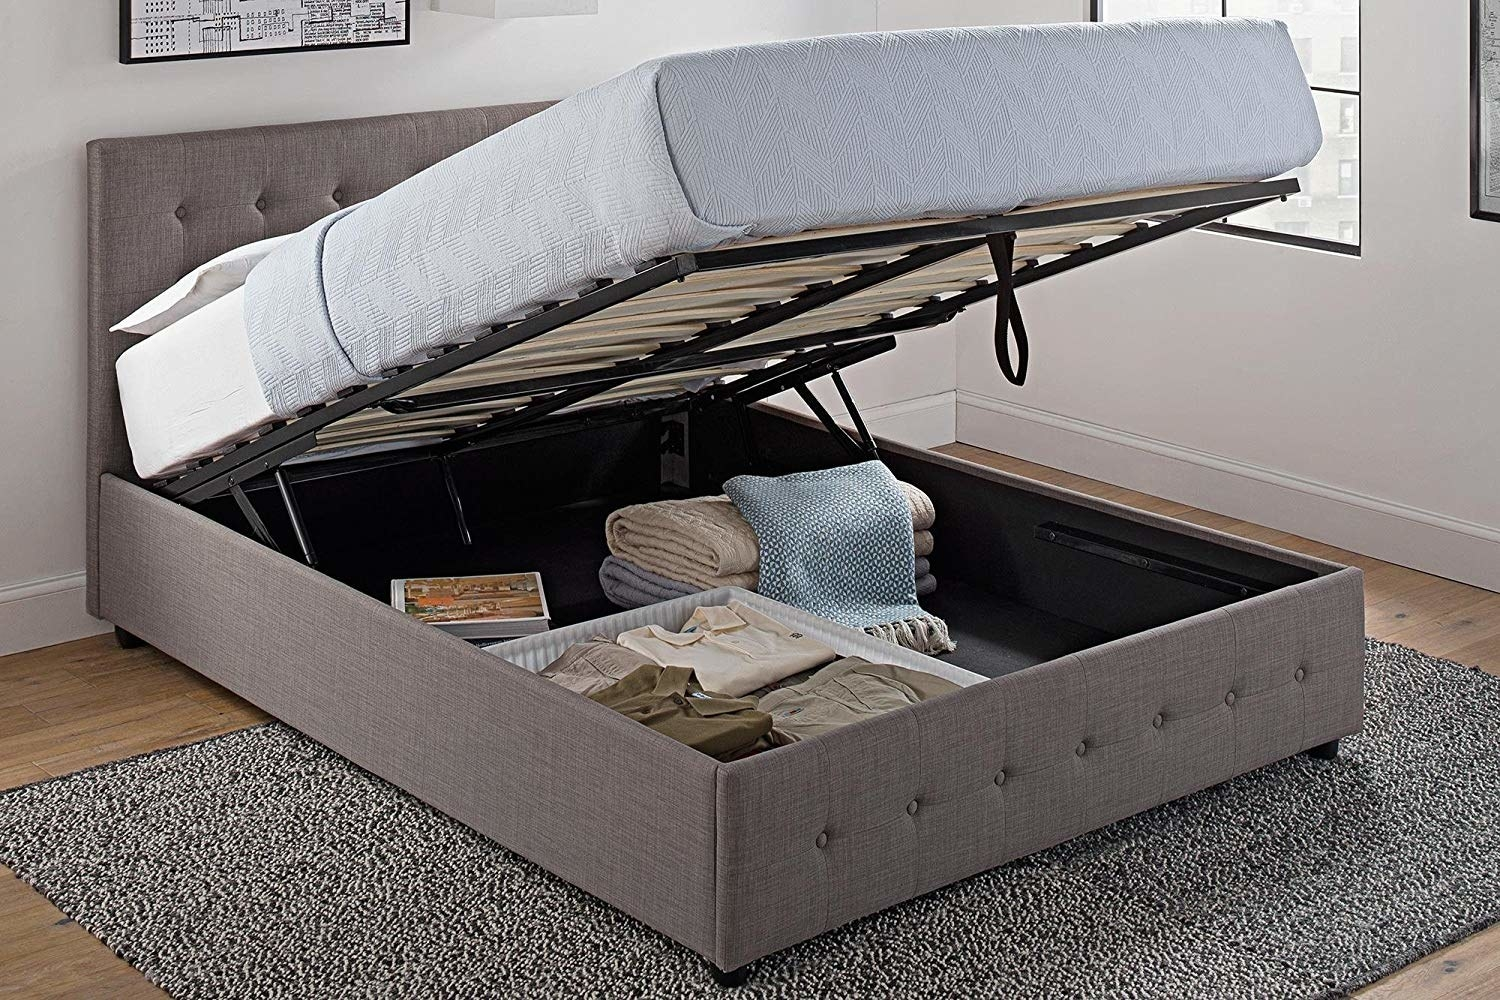 The bed with the mattress lifted up to show the under-bed storage